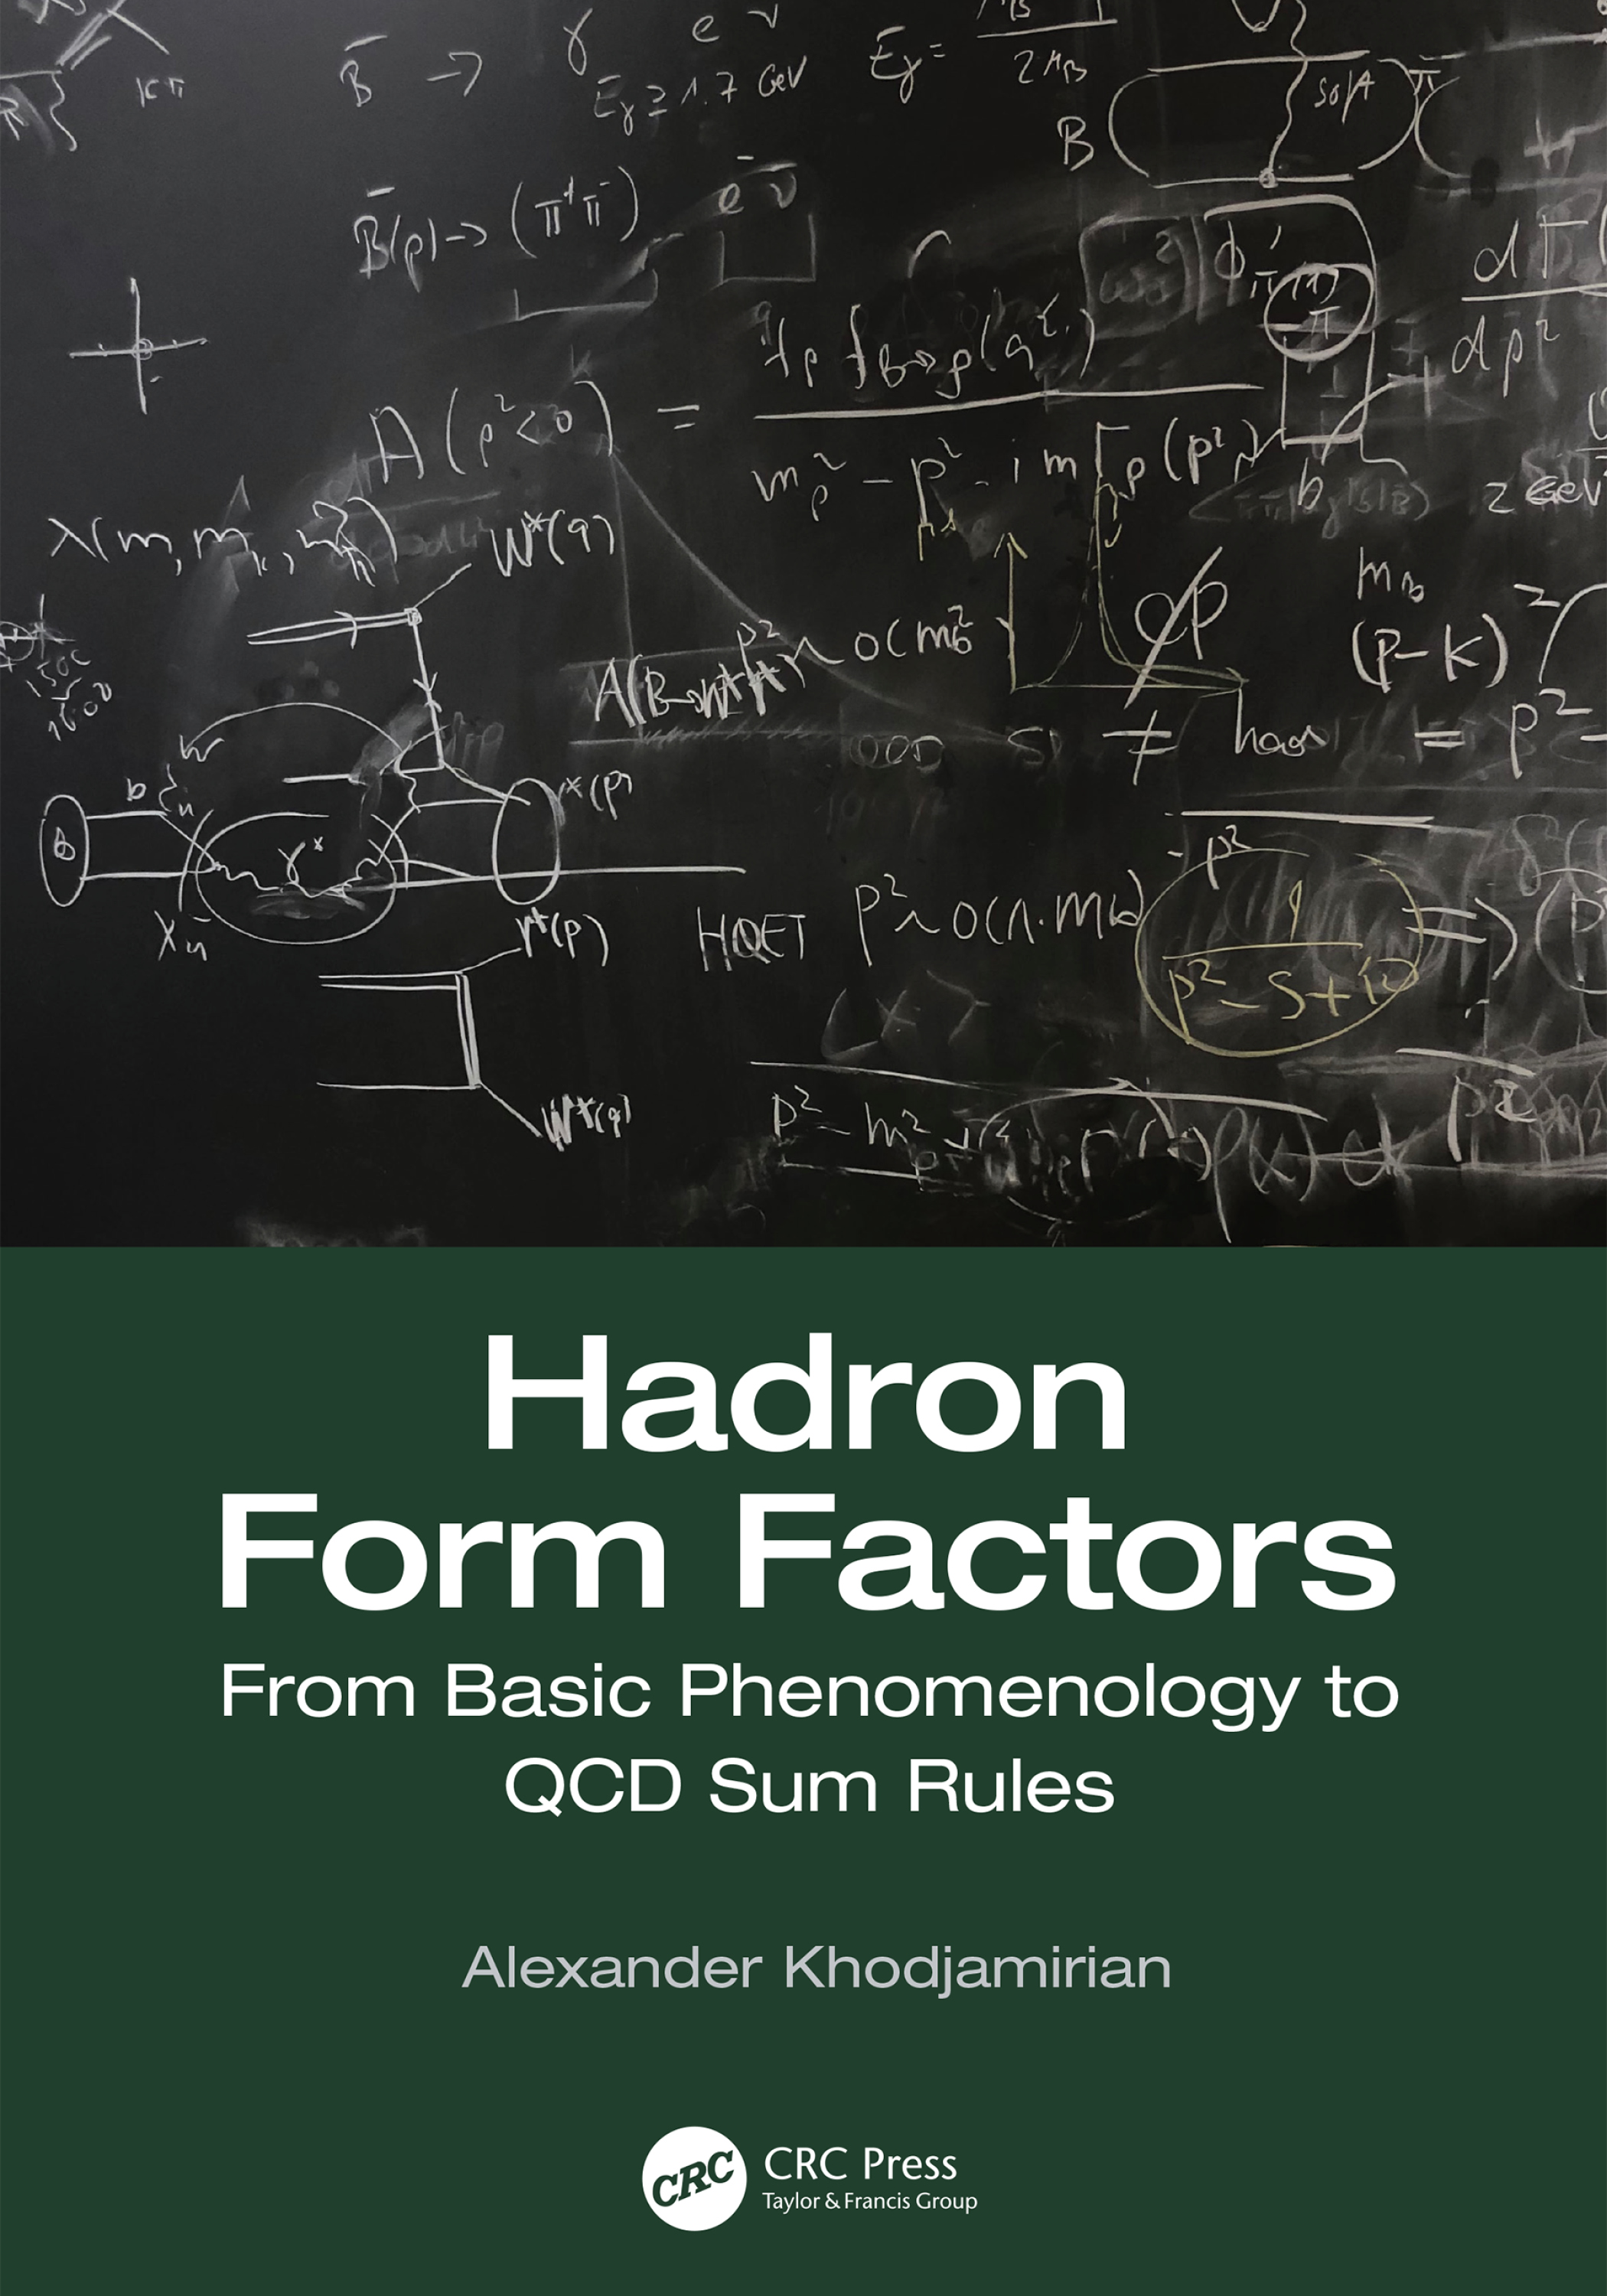 Hadron Form Factors: From Basic Phenomenology to QCD Sum Rules book cover